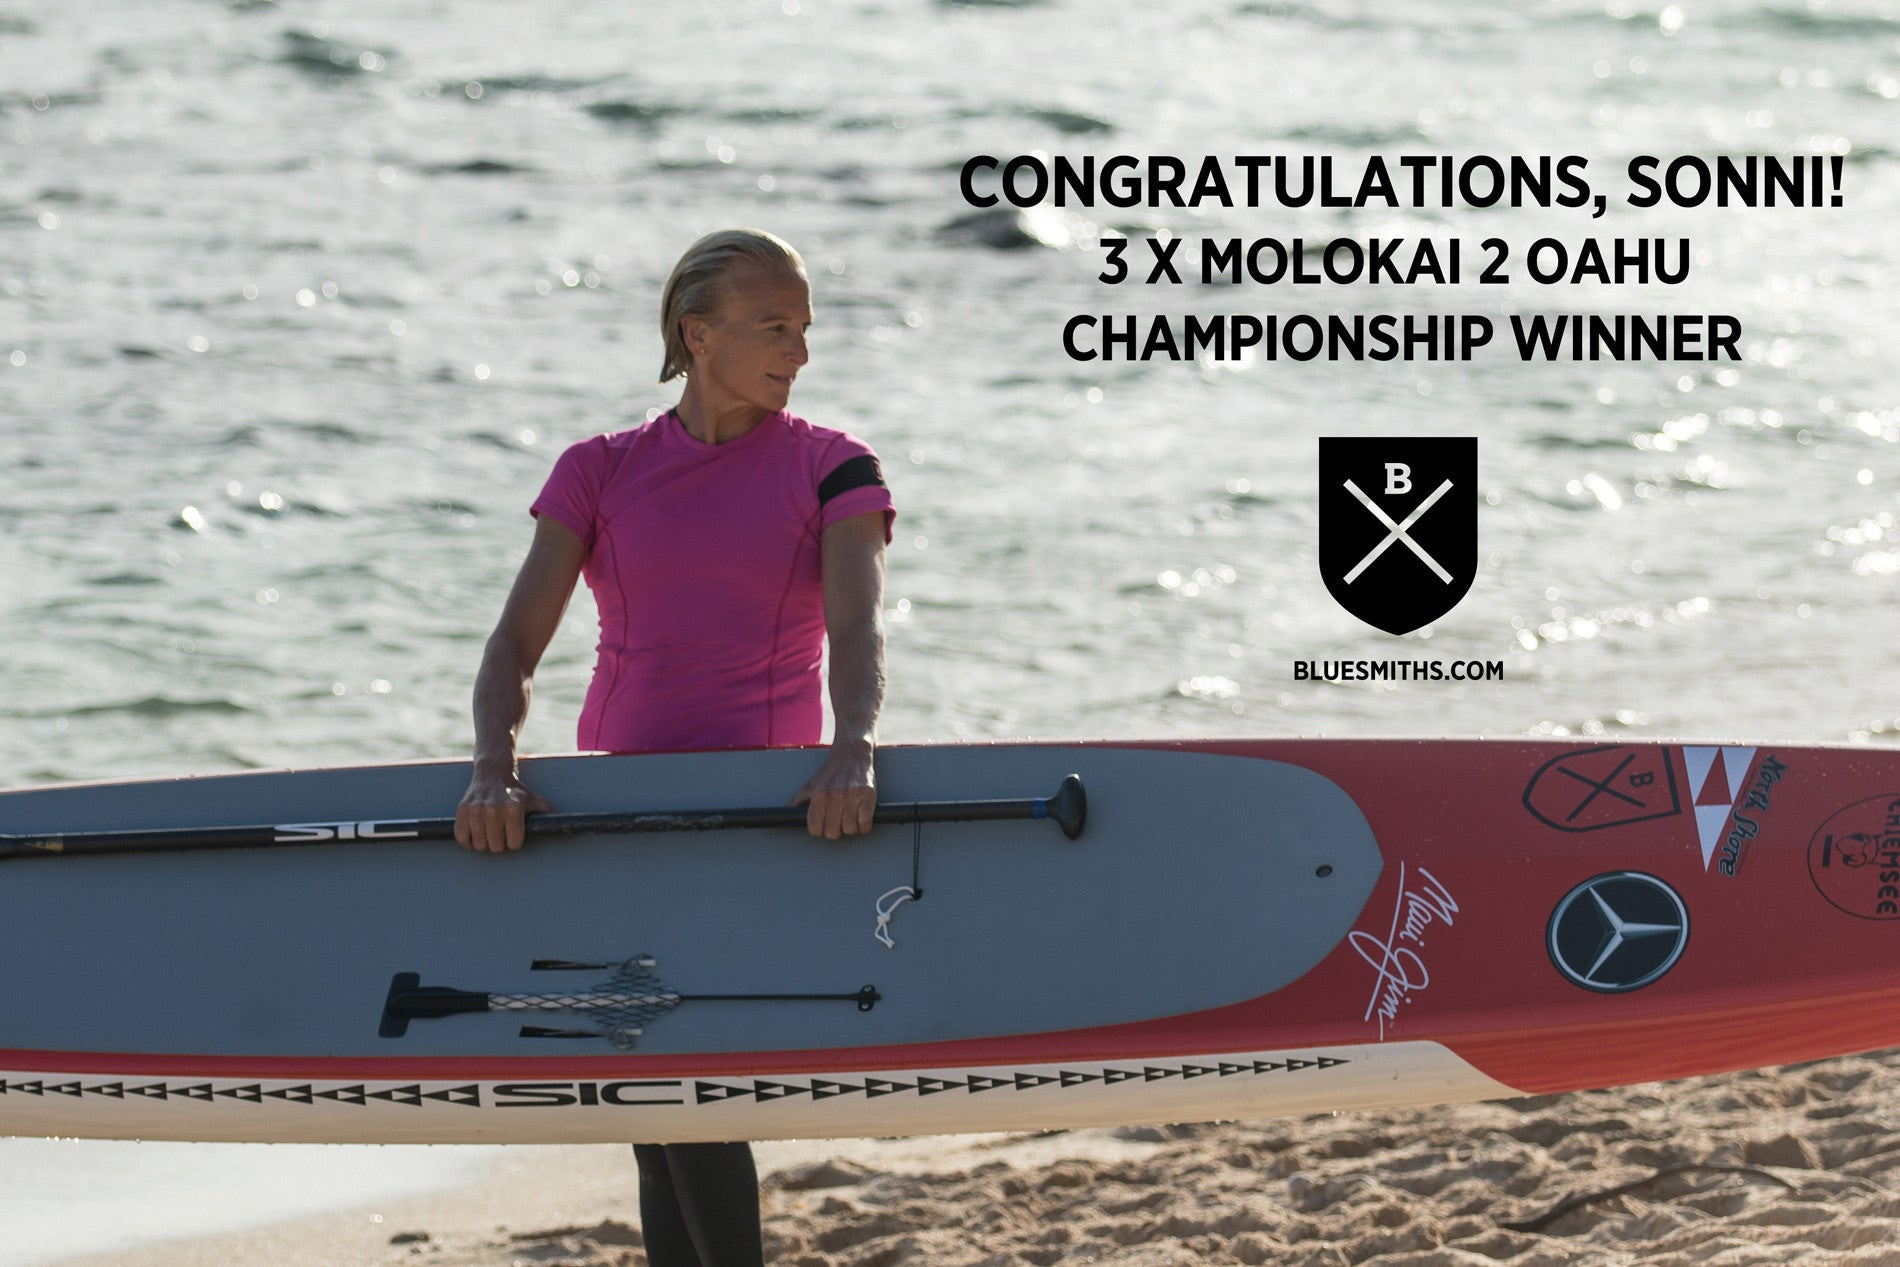 Bluesmiths Riders win both Molokai 2 Oahu Championship and the Maui Race Series State Championships!